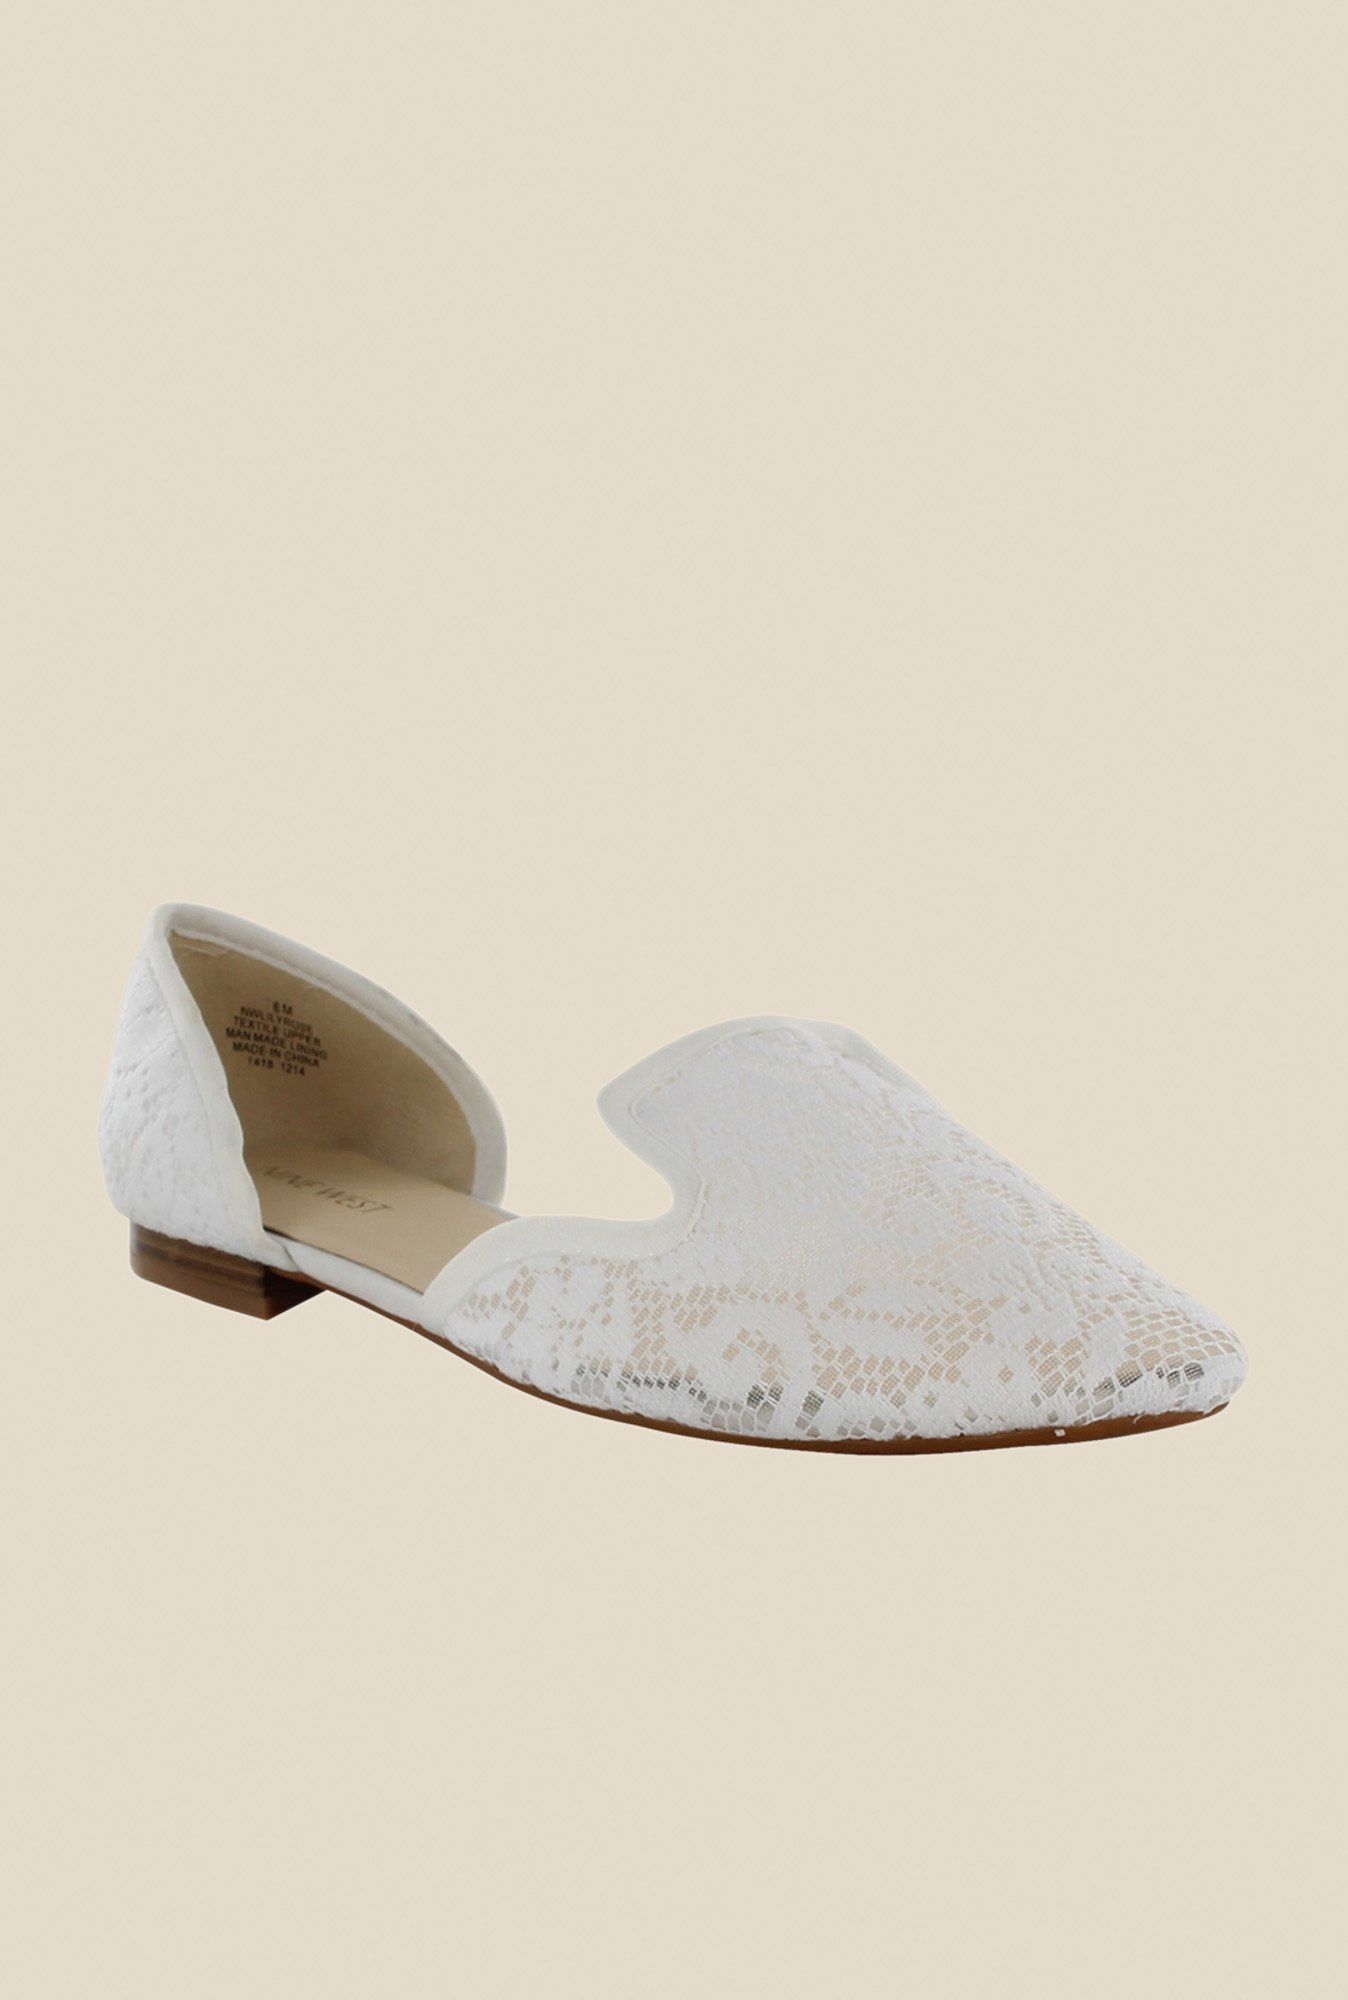 Nine West White D'orsay Sandals